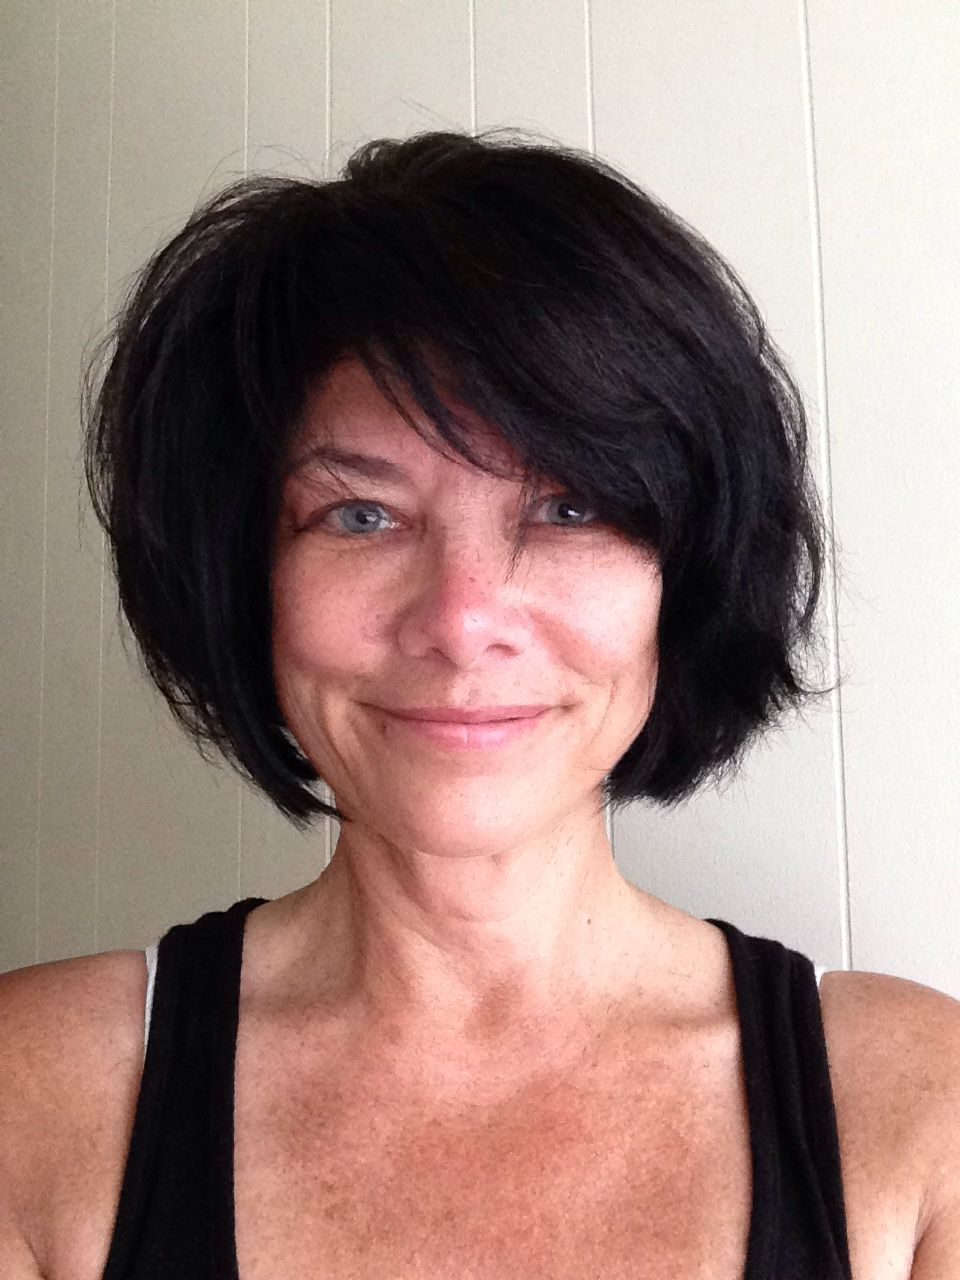 Short, Easy Care Haircut For Thick, Coarse Hair (View 25 of 25)